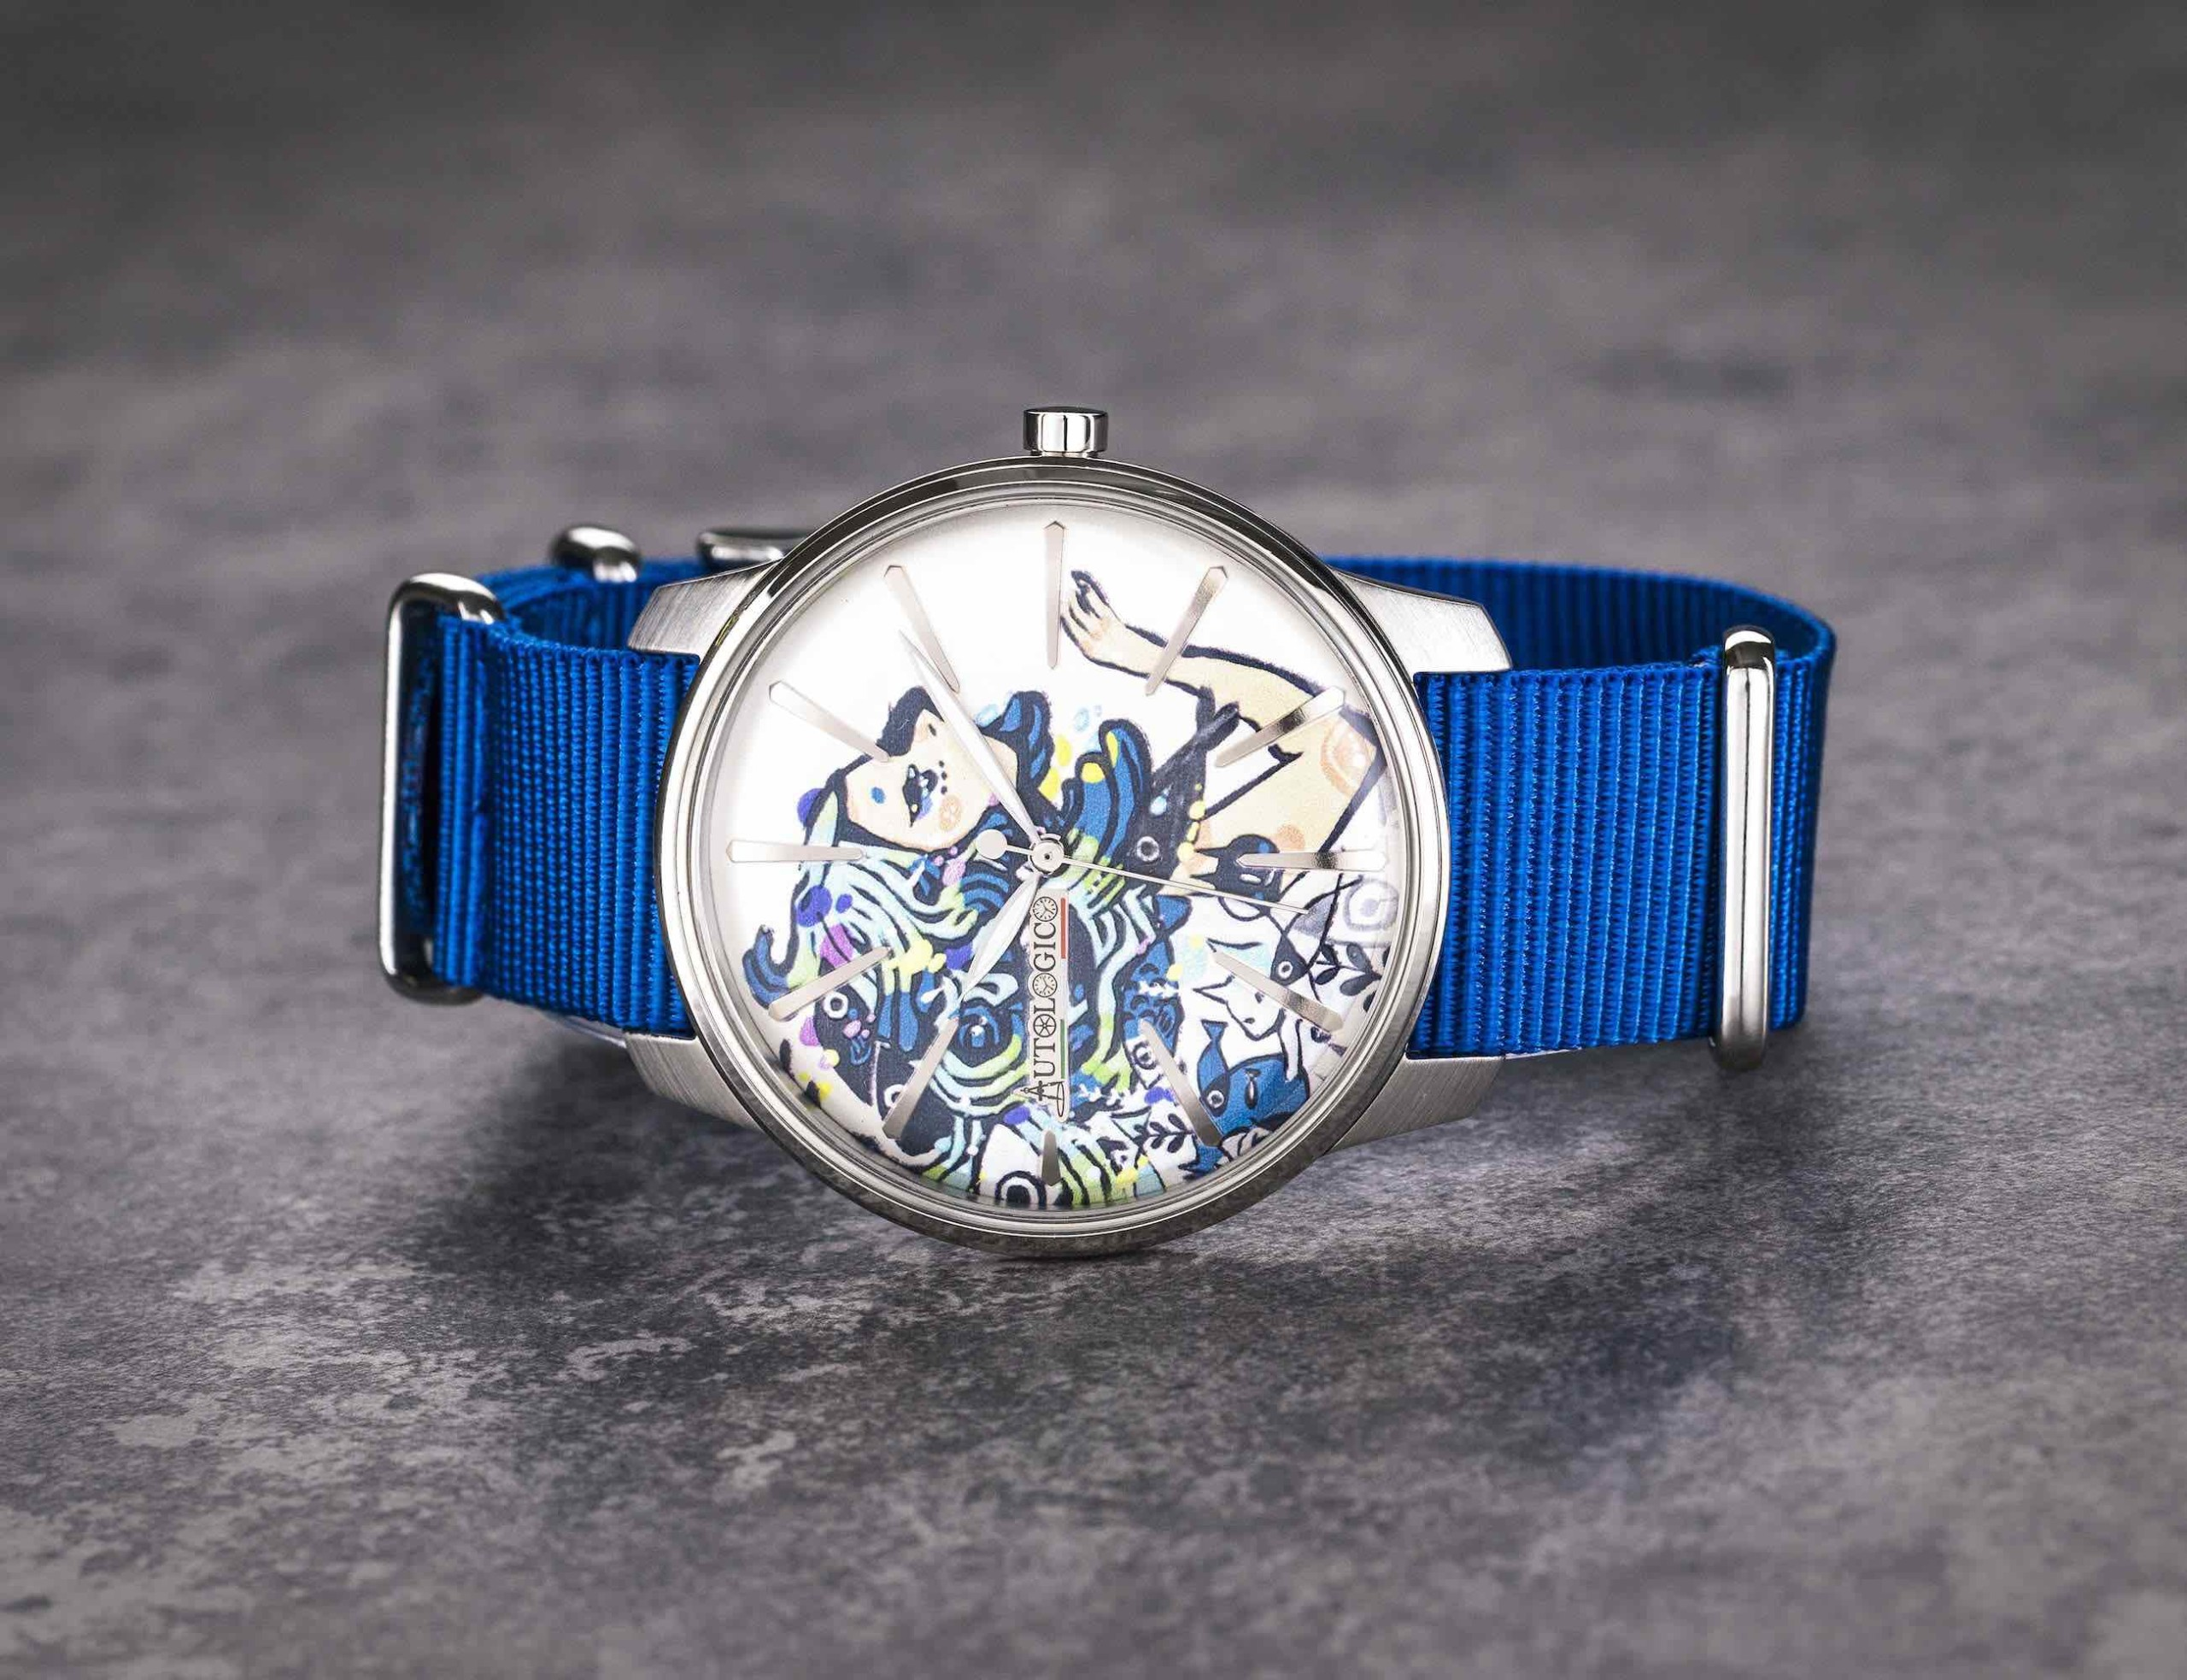 GraffiTIME 3D Printed Graffiti-Inspired Watch offers totally unique style